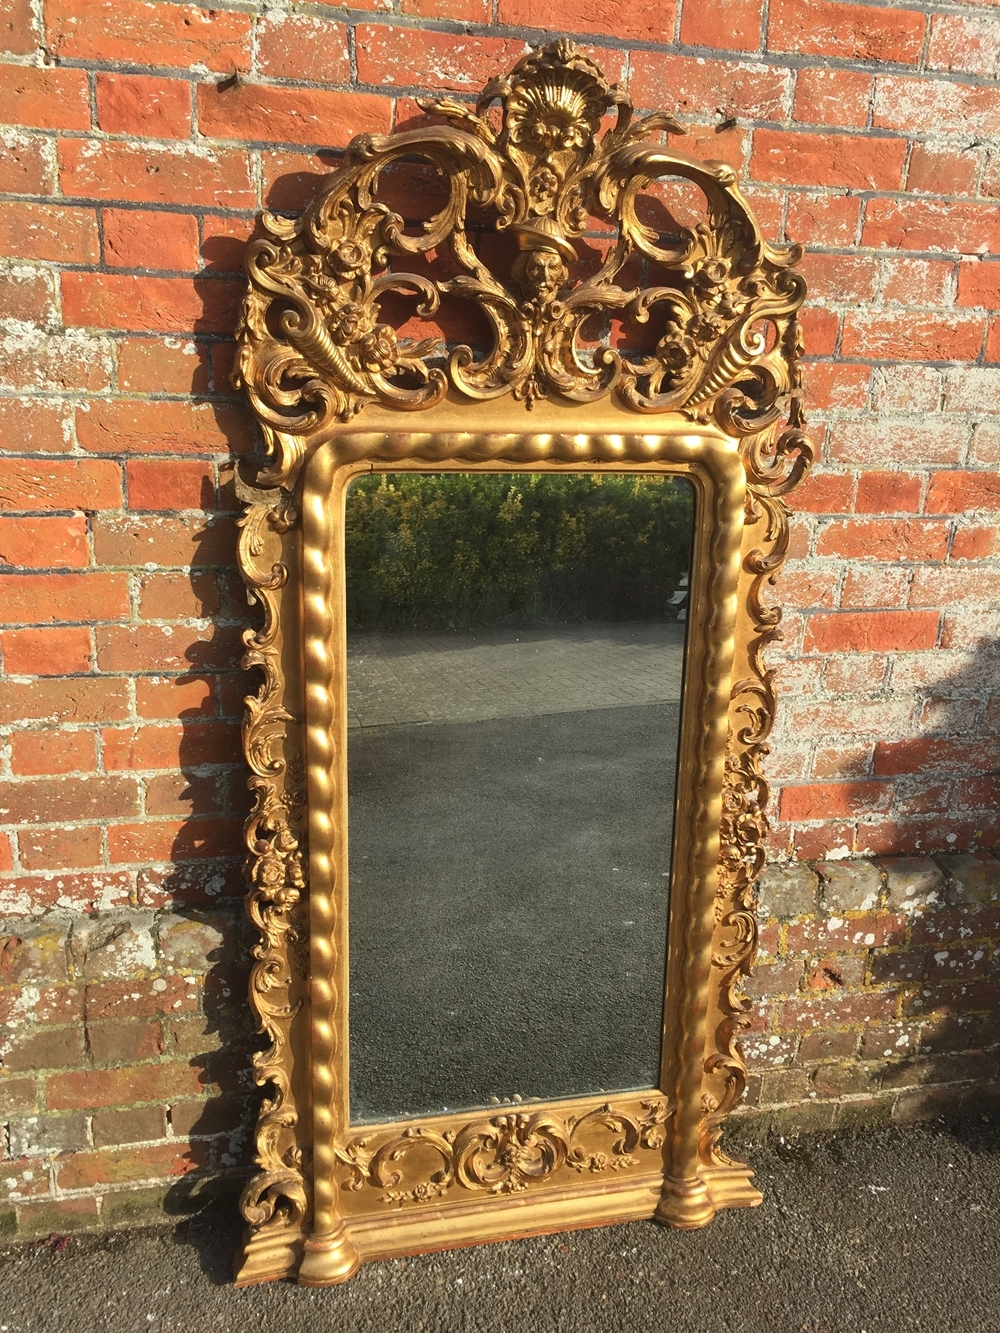 Large Overmantle Mirrors Uk Antique Overmantle Mirrors For Sale Throughout French Mirrors For Sale (Image 8 of 15)